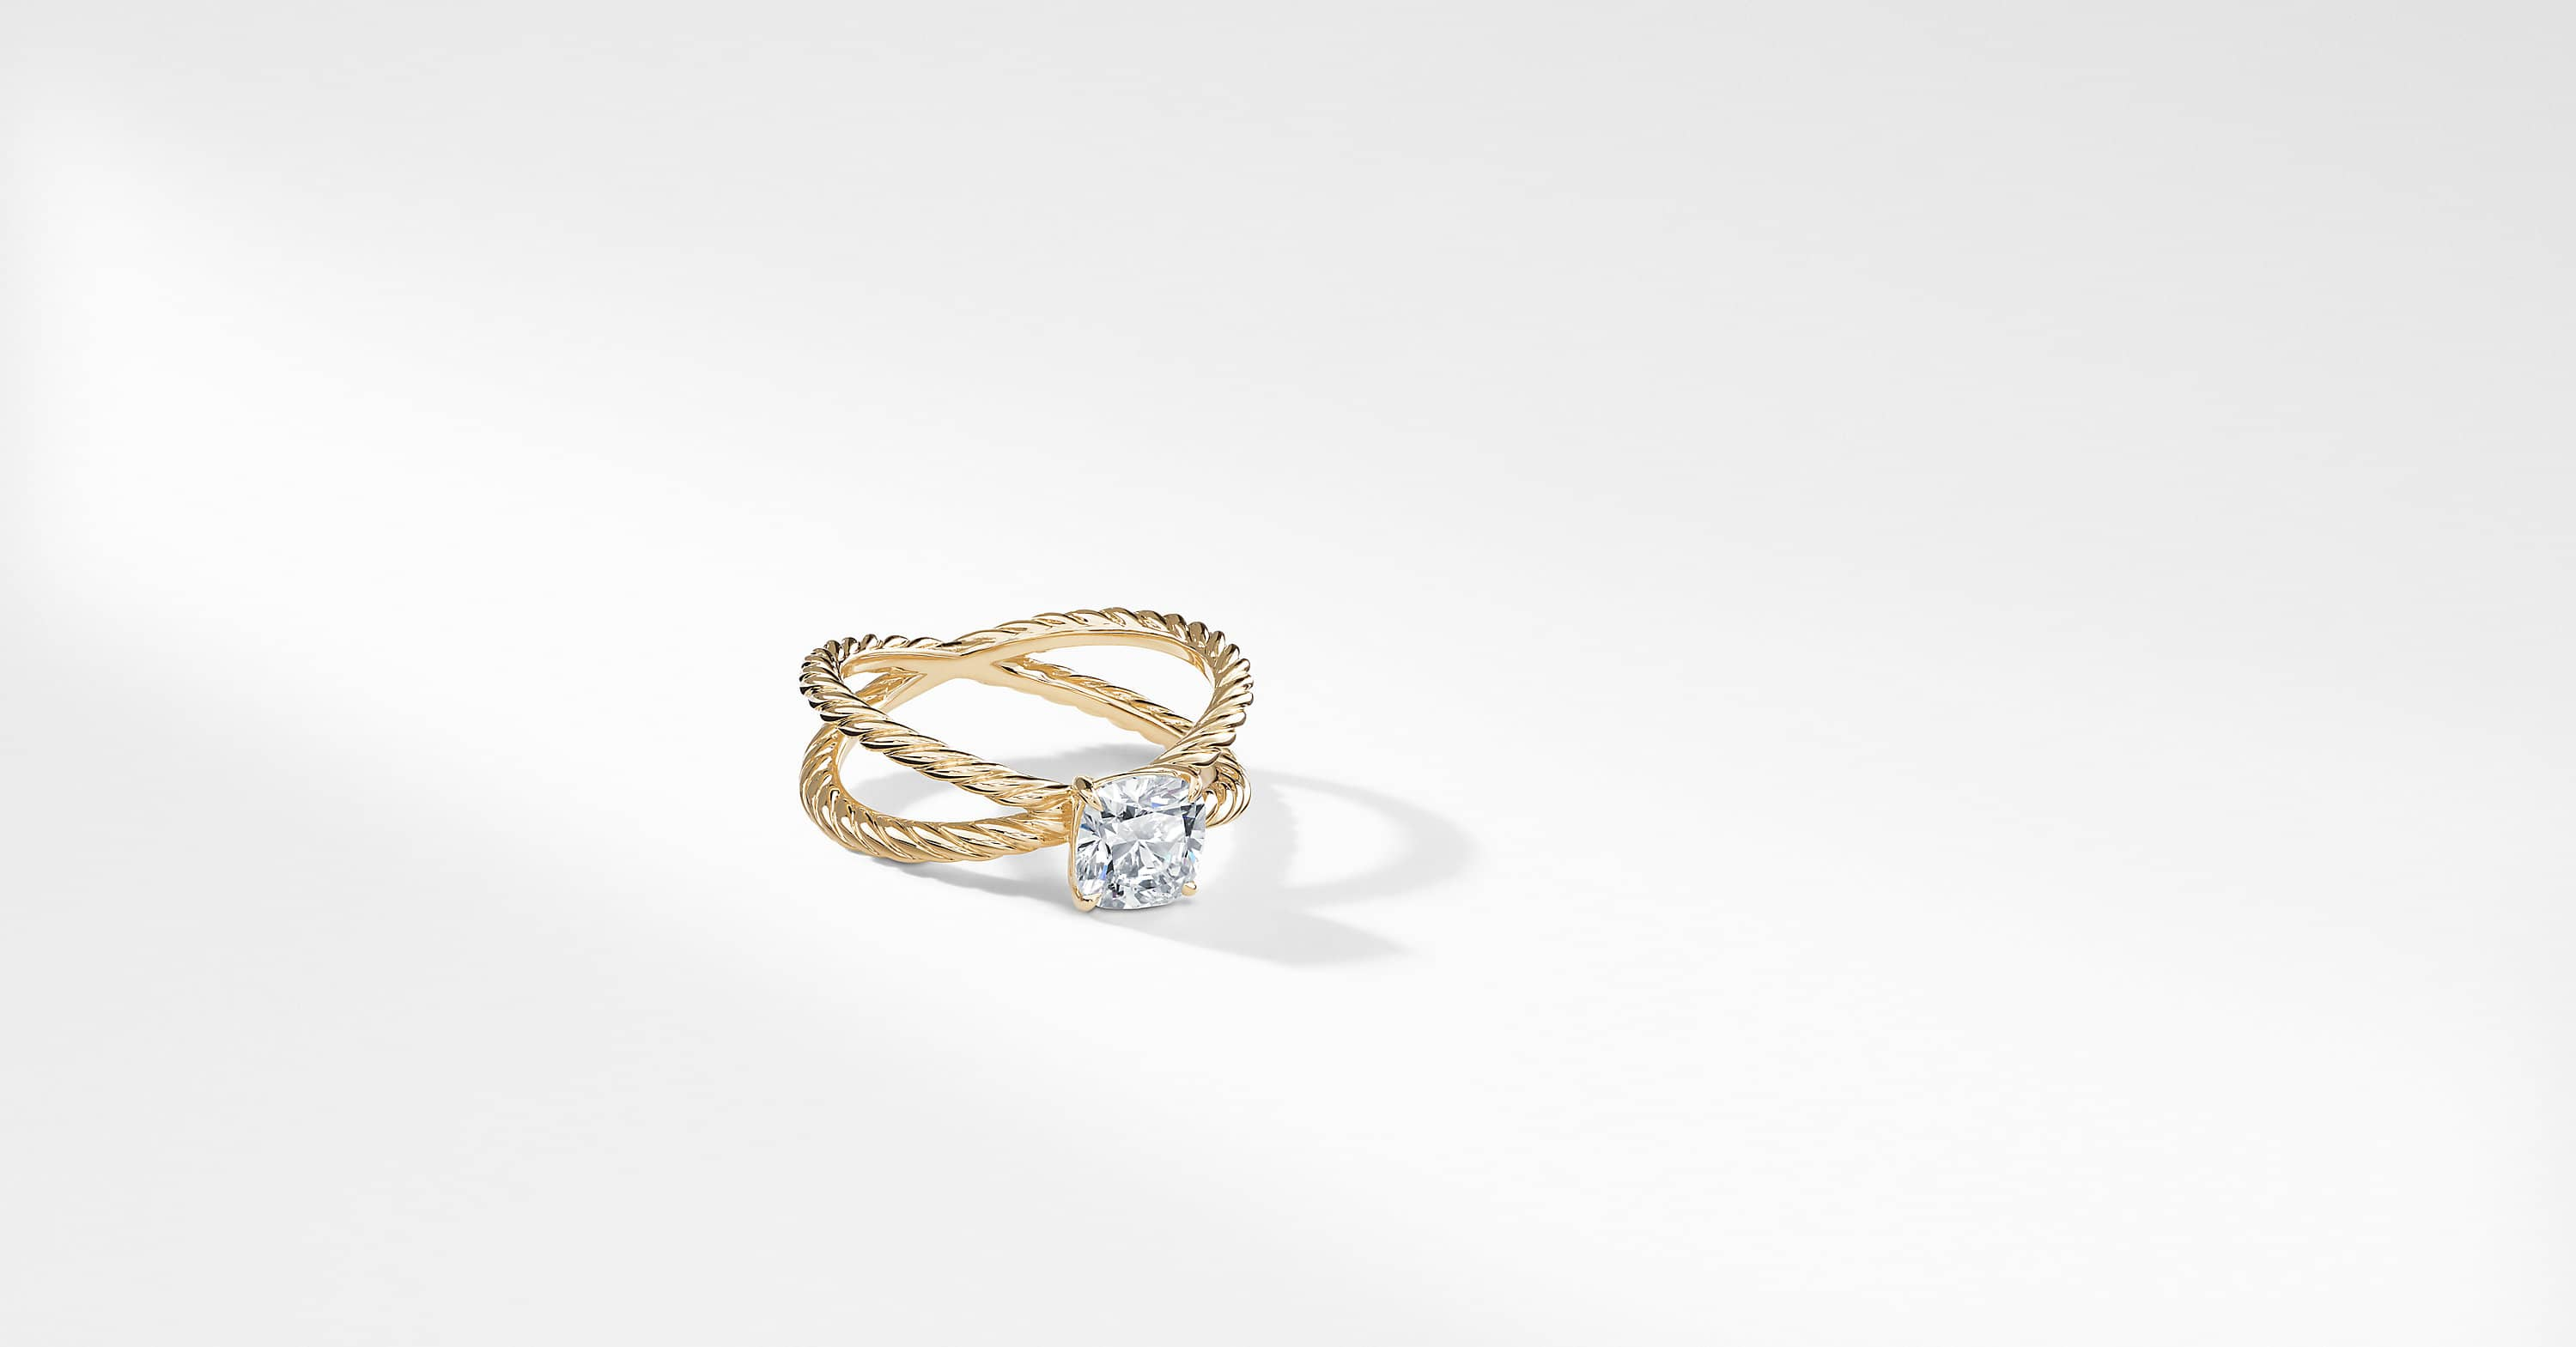 DY Crossover Petite Engagement Ring in 18K Yellow Gold, DY Signature Cut